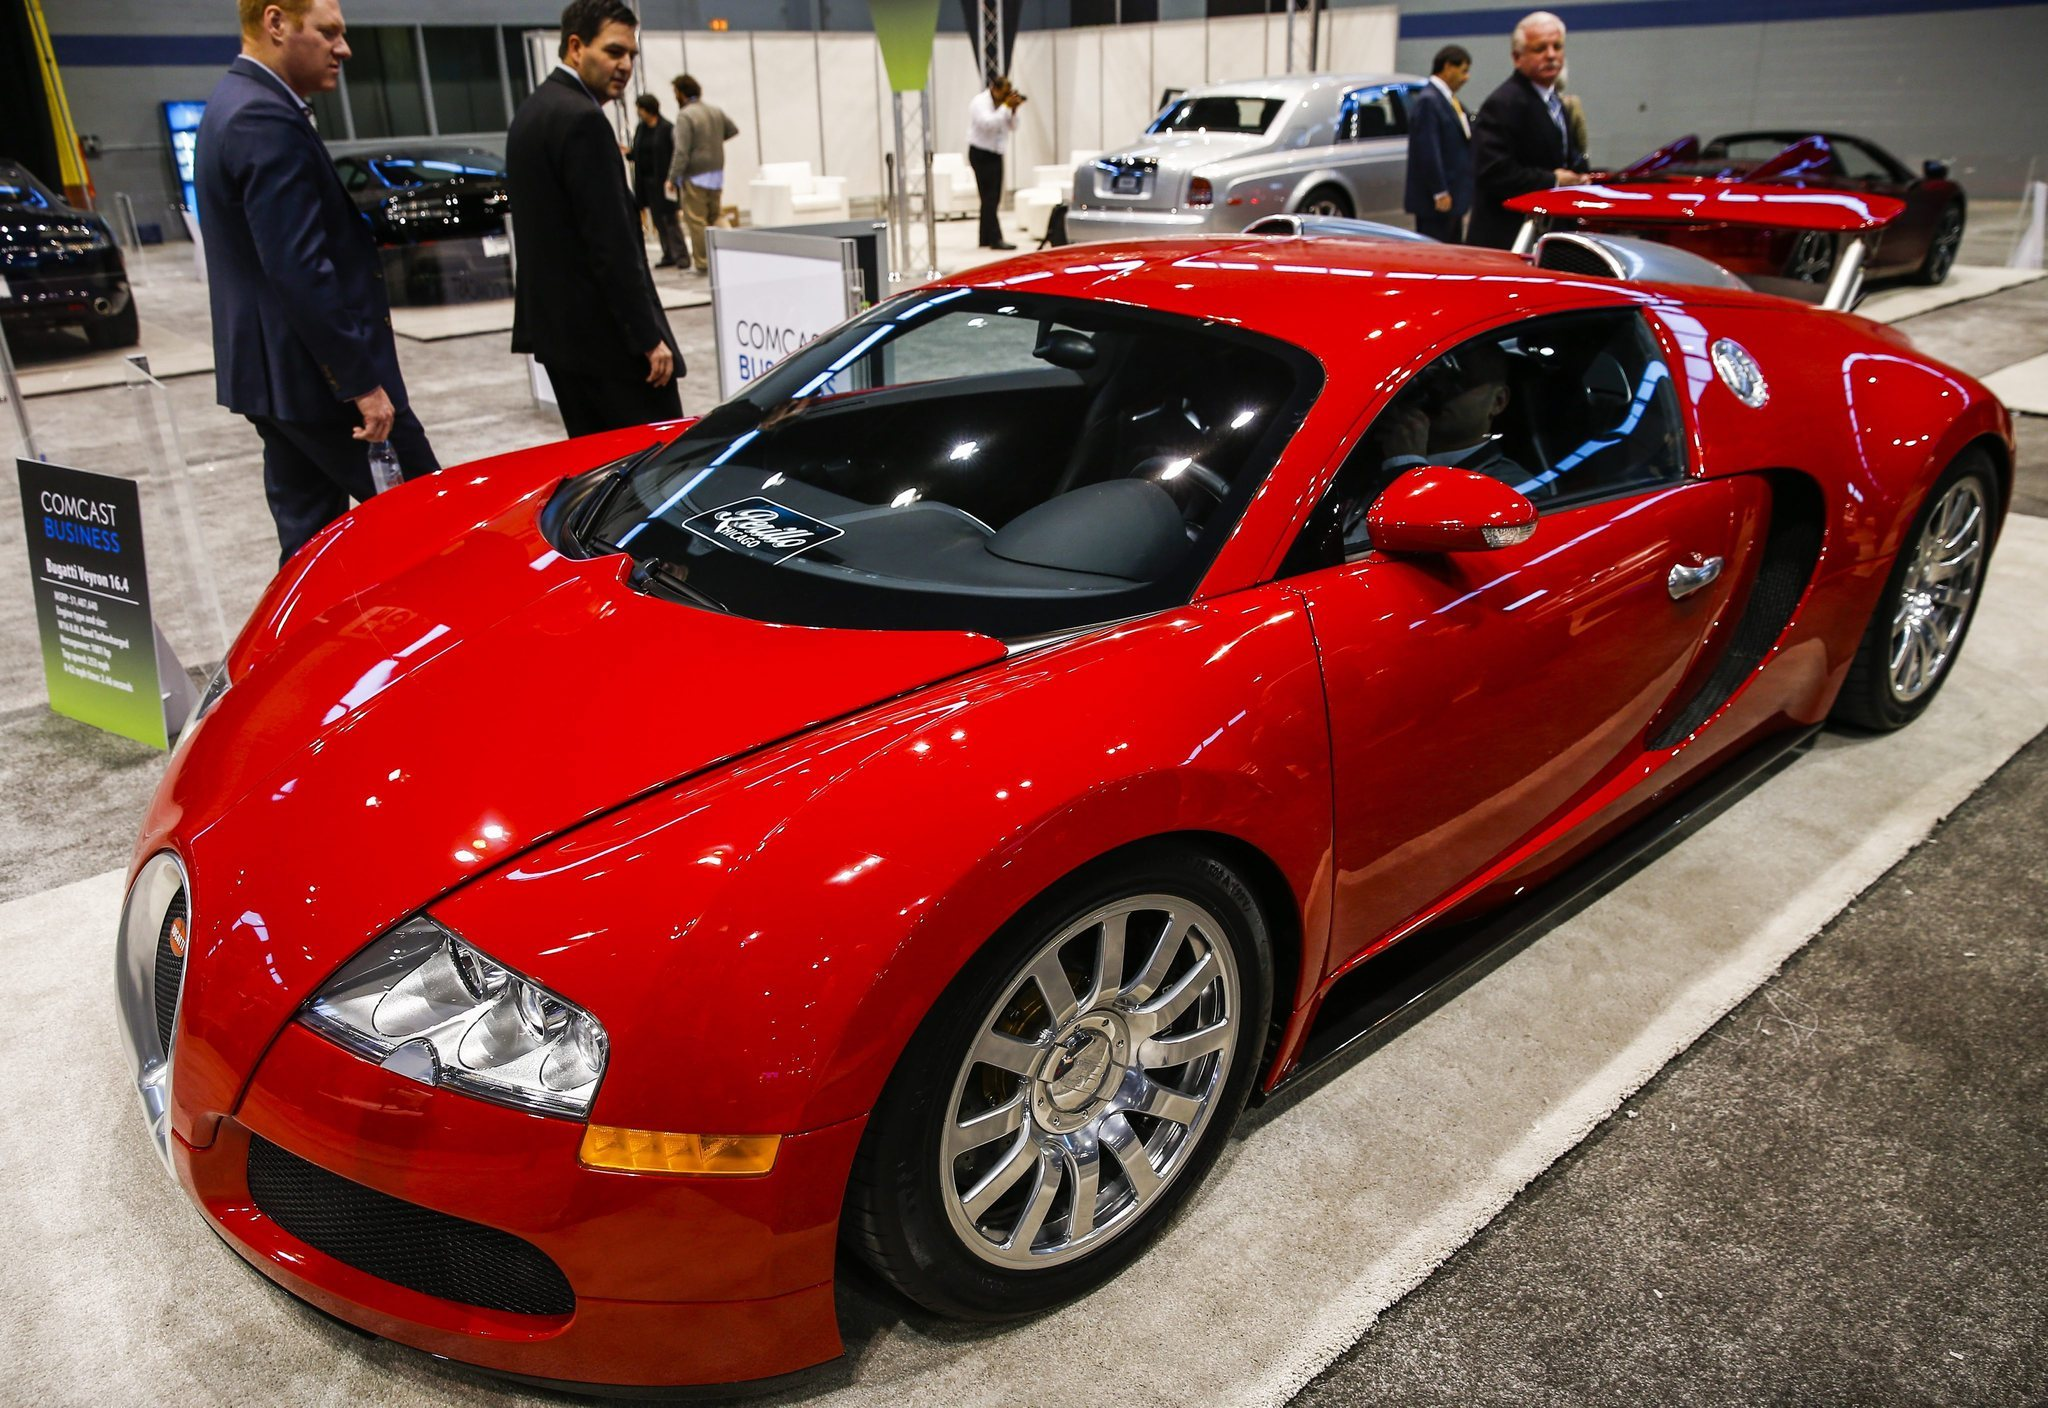 Most ridiculous car at the 2014 Chicago Auto Show? Bugatti Veyron